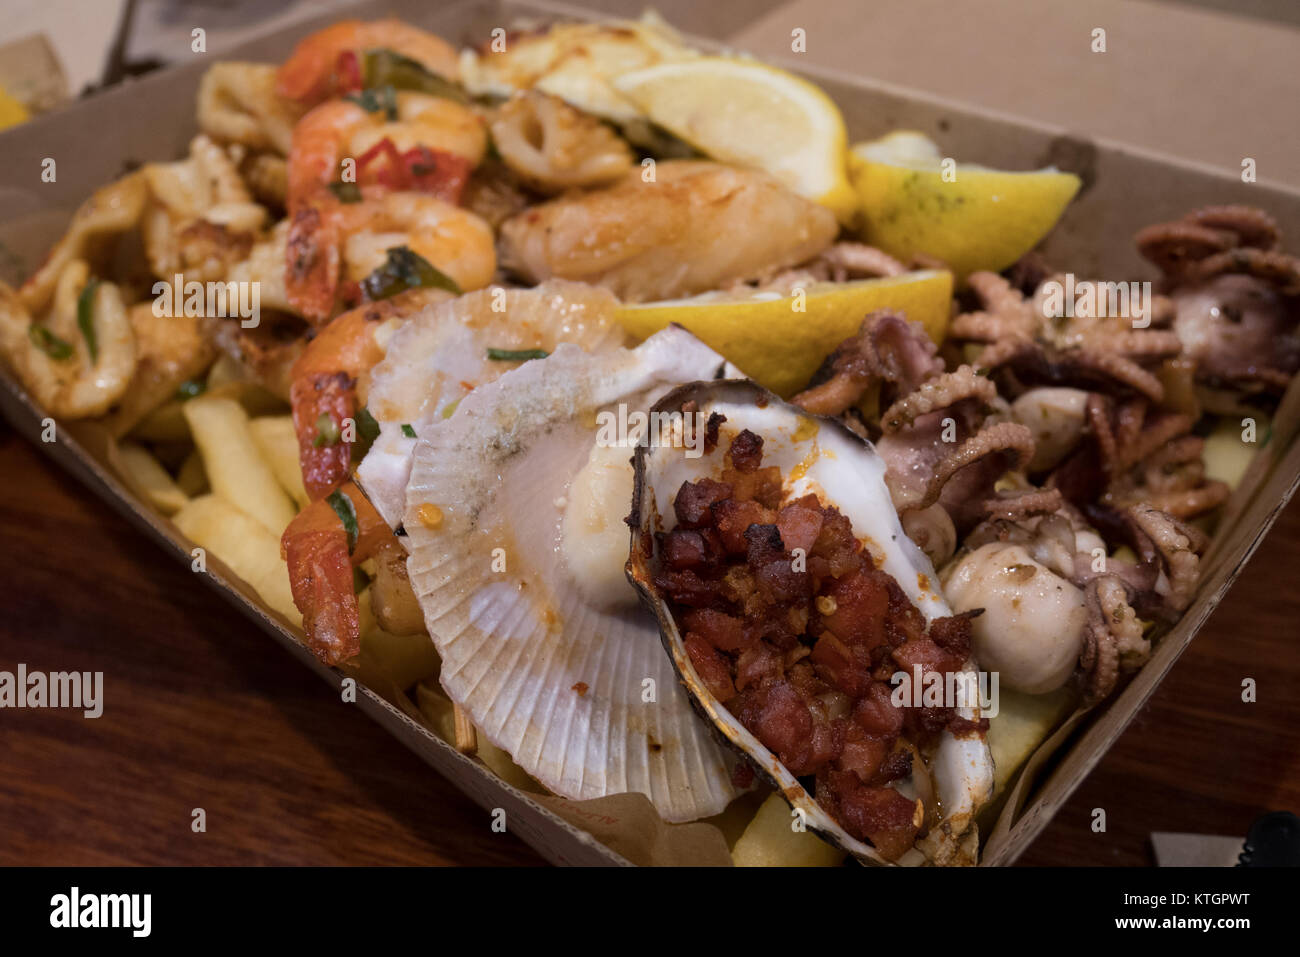 Grilled Seafood Platter Stock Photo Alamy